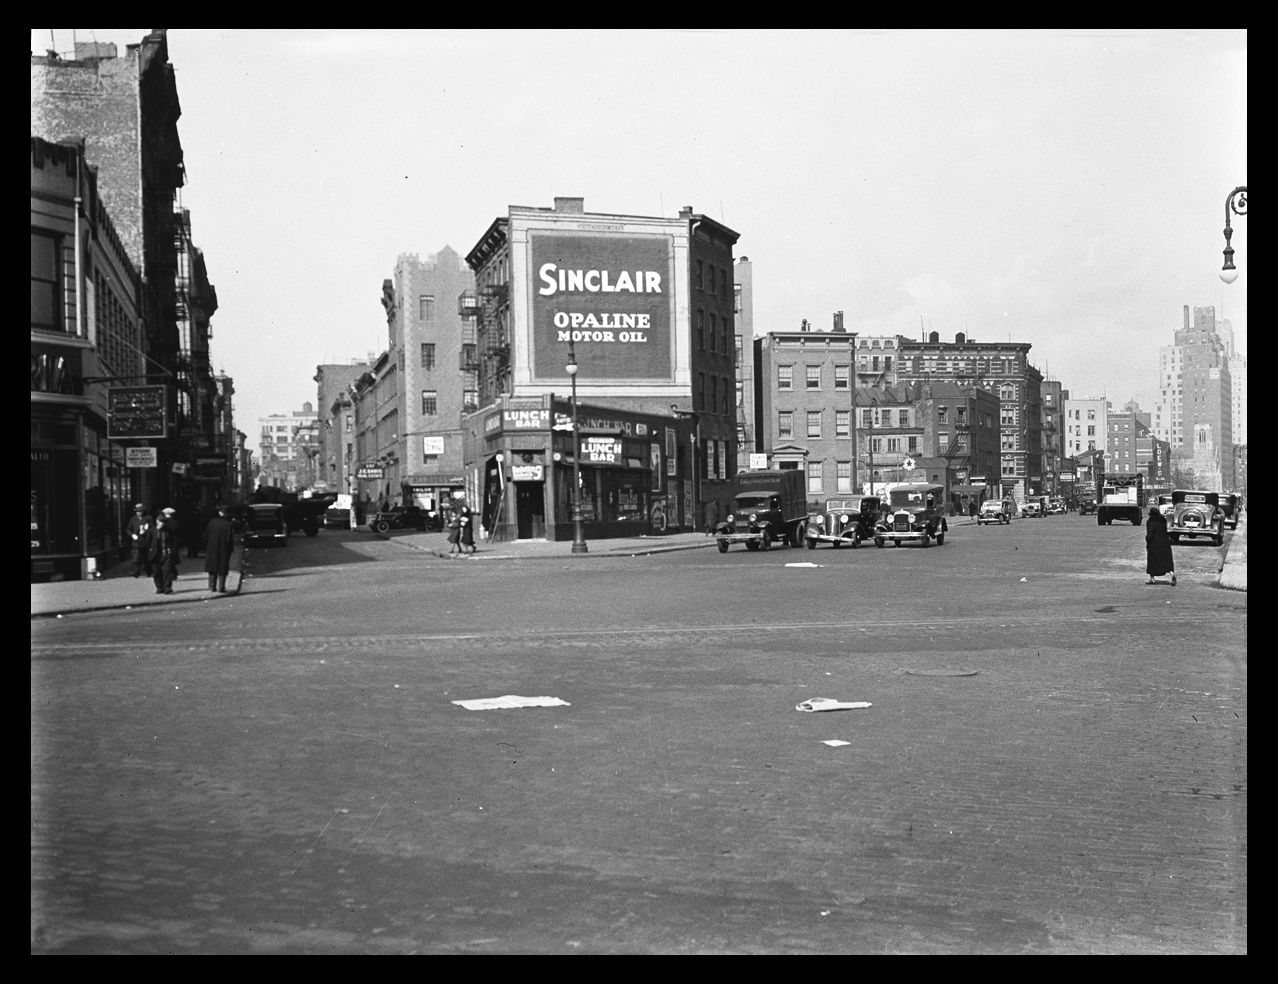 Vintage Christopher St, West 4th st at 7th Ave West Village, NYC c.1933 from original 4x5 negative